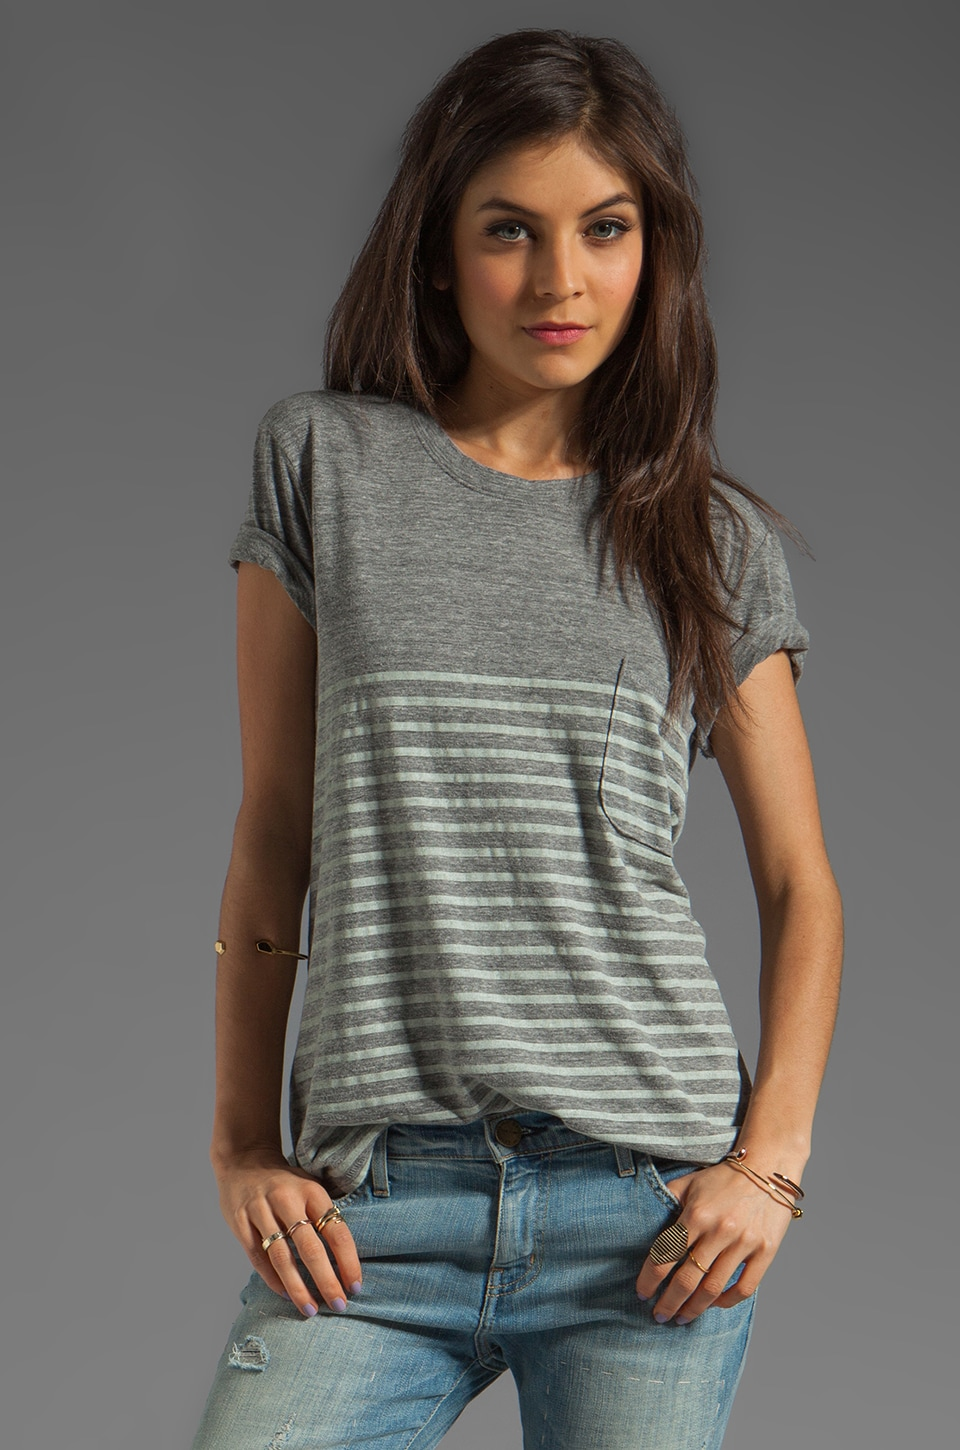 TEXTILE Elizabeth and James Castaway Bowery Tee in Heather Grey Combo